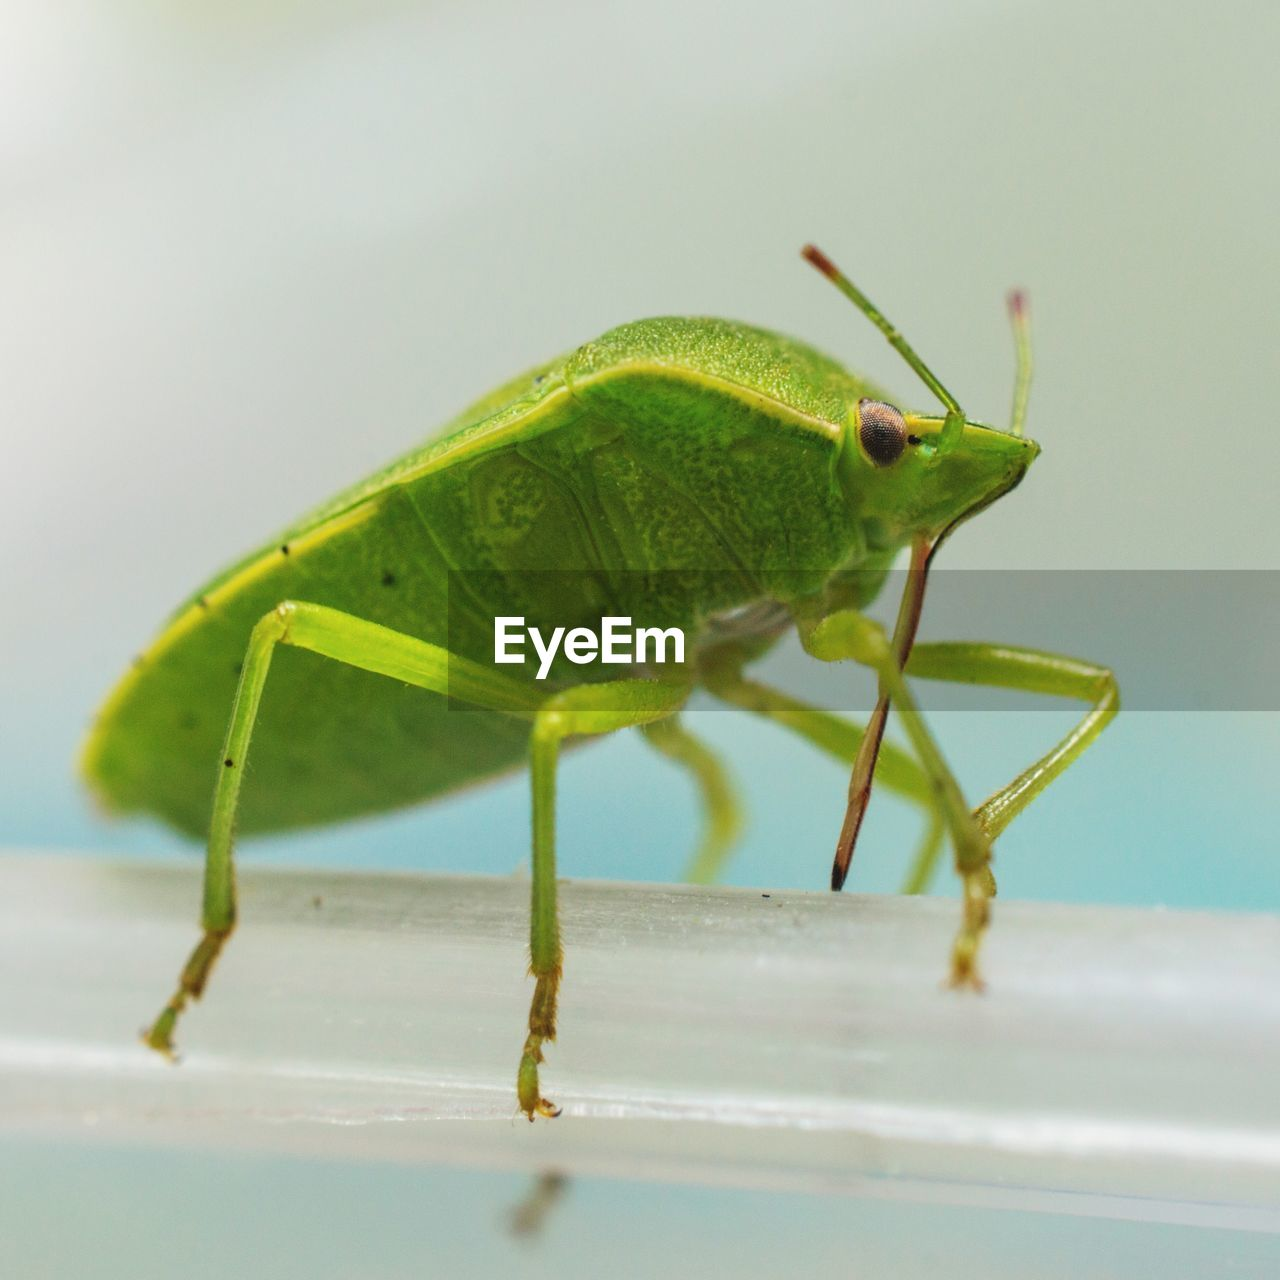 invertebrate, insect, green color, animal themes, animal, animal wildlife, one animal, animals in the wild, close-up, animal antenna, grasshopper, no people, animal body part, selective focus, zoology, nature, side view, day, full length, focus on foreground, animal eye